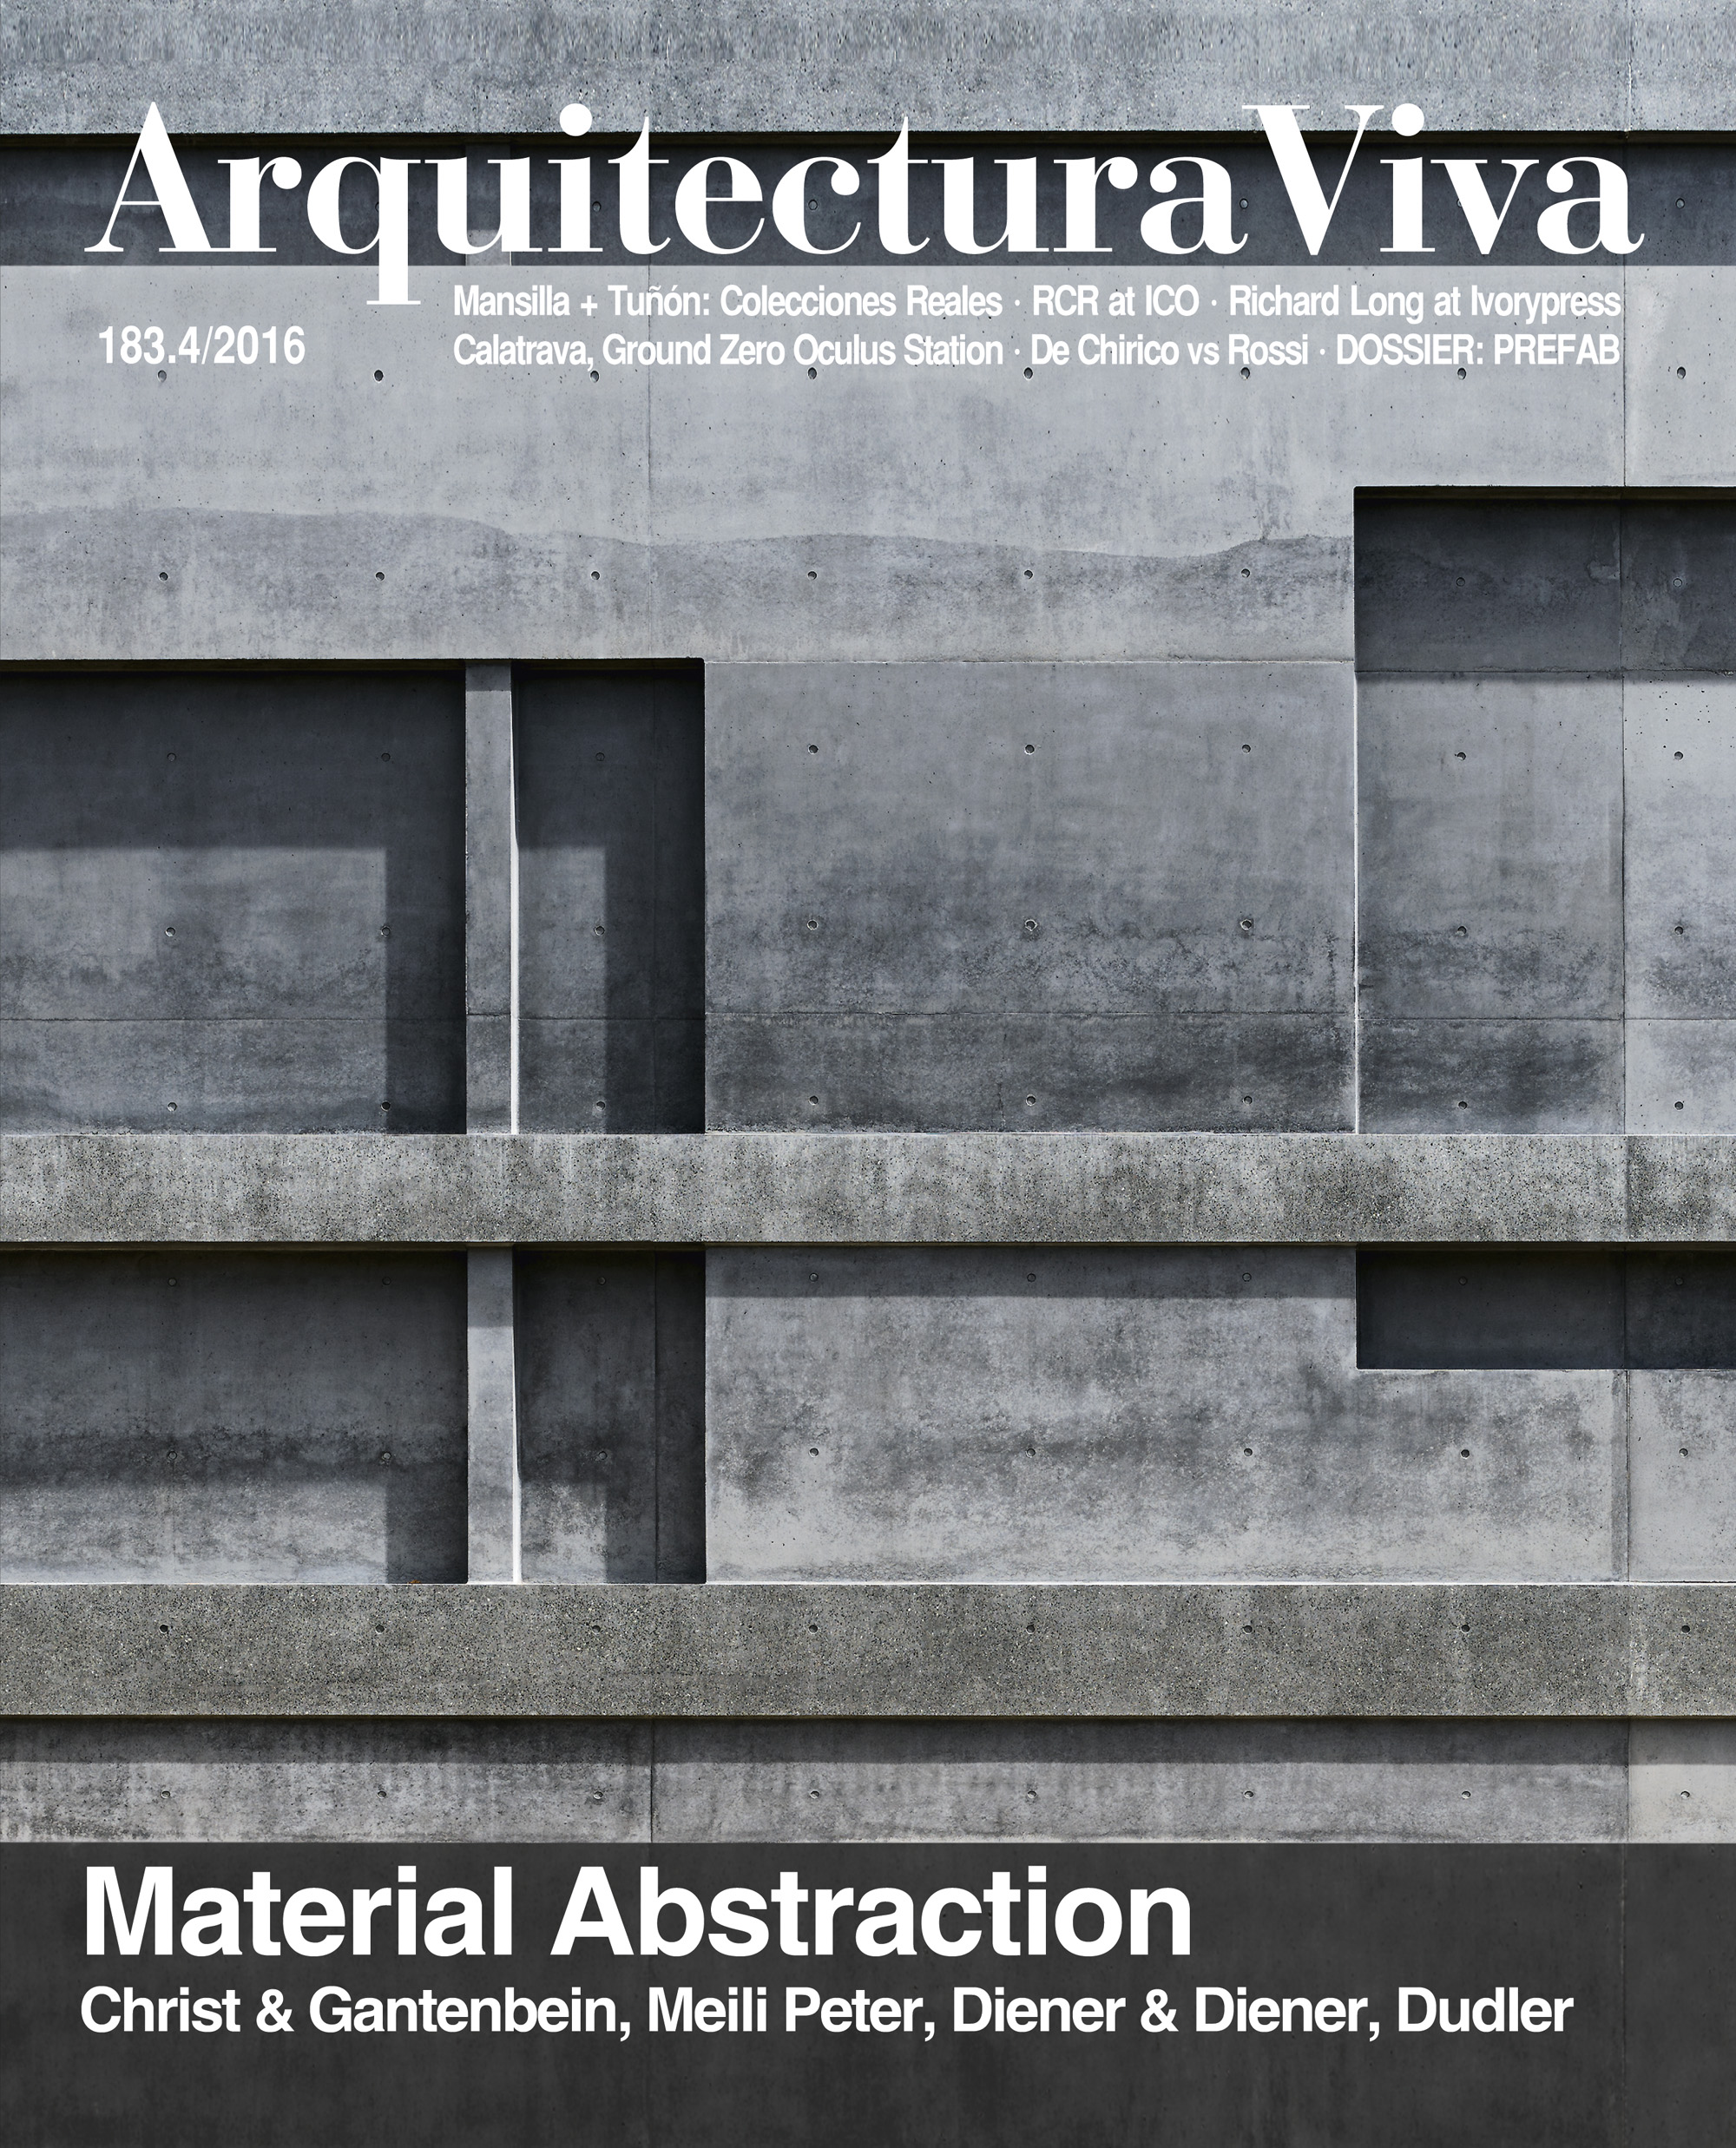 Material Abstraction